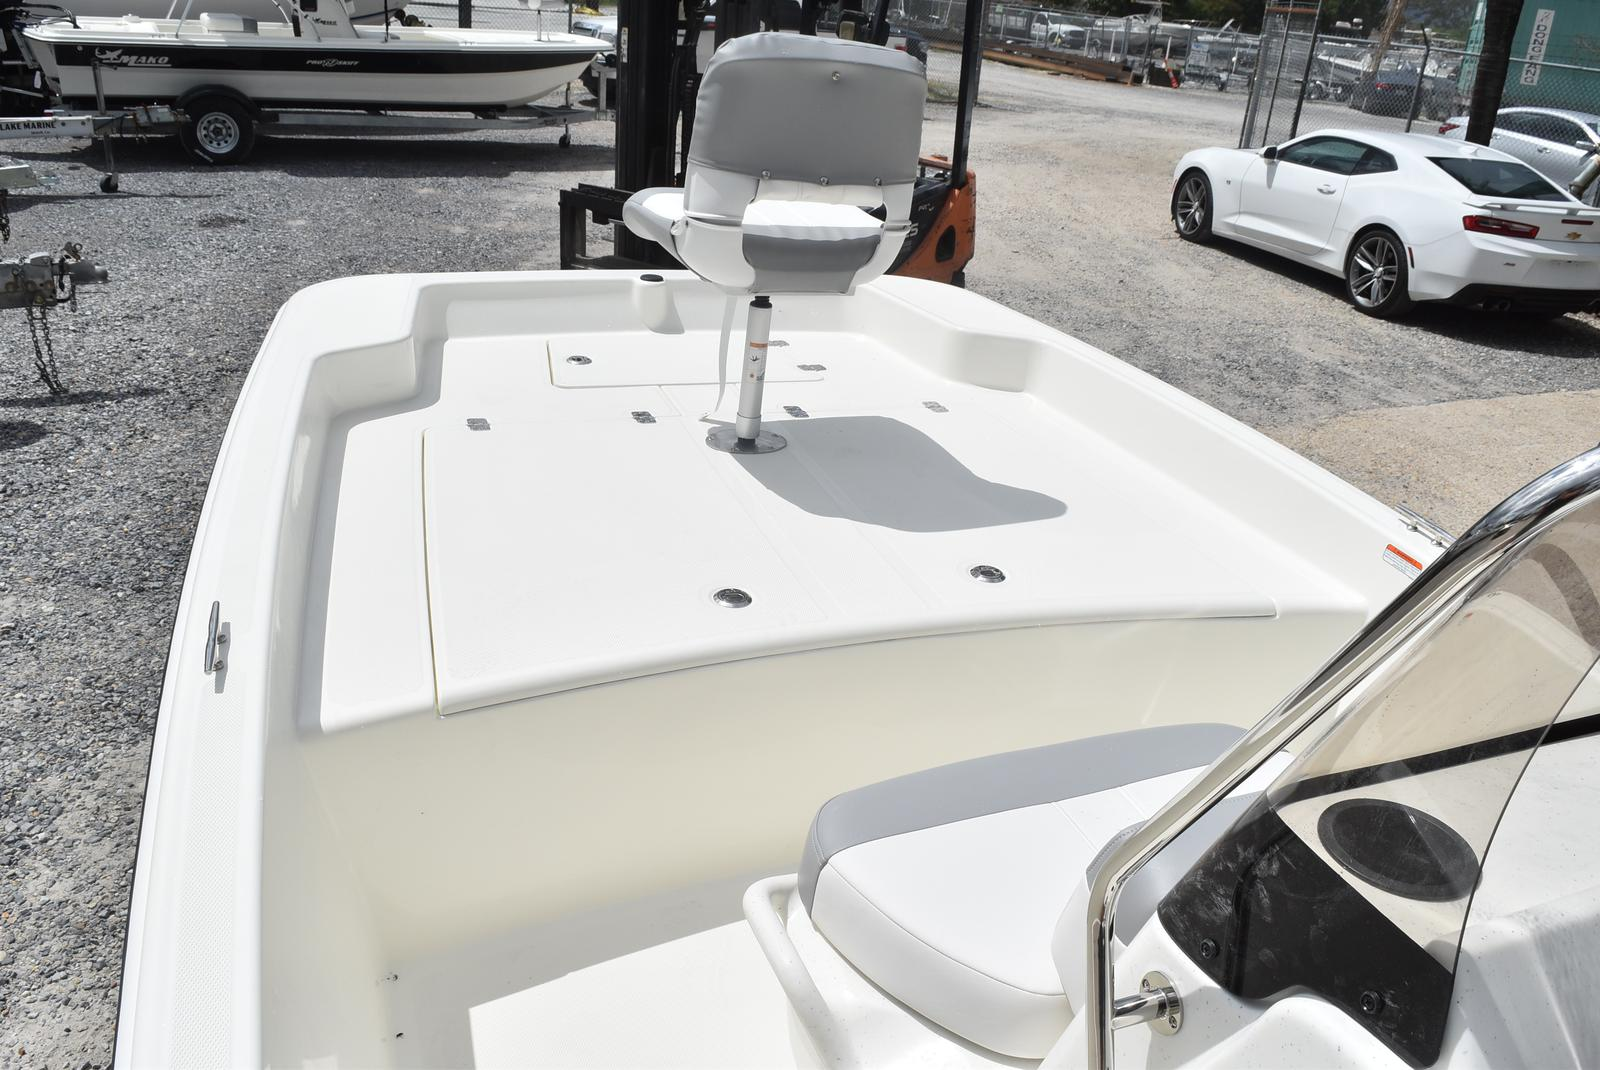 2020 Mako boat for sale, model of the boat is Pro Skiff 17, 75 ELPT & Image # 464 of 702